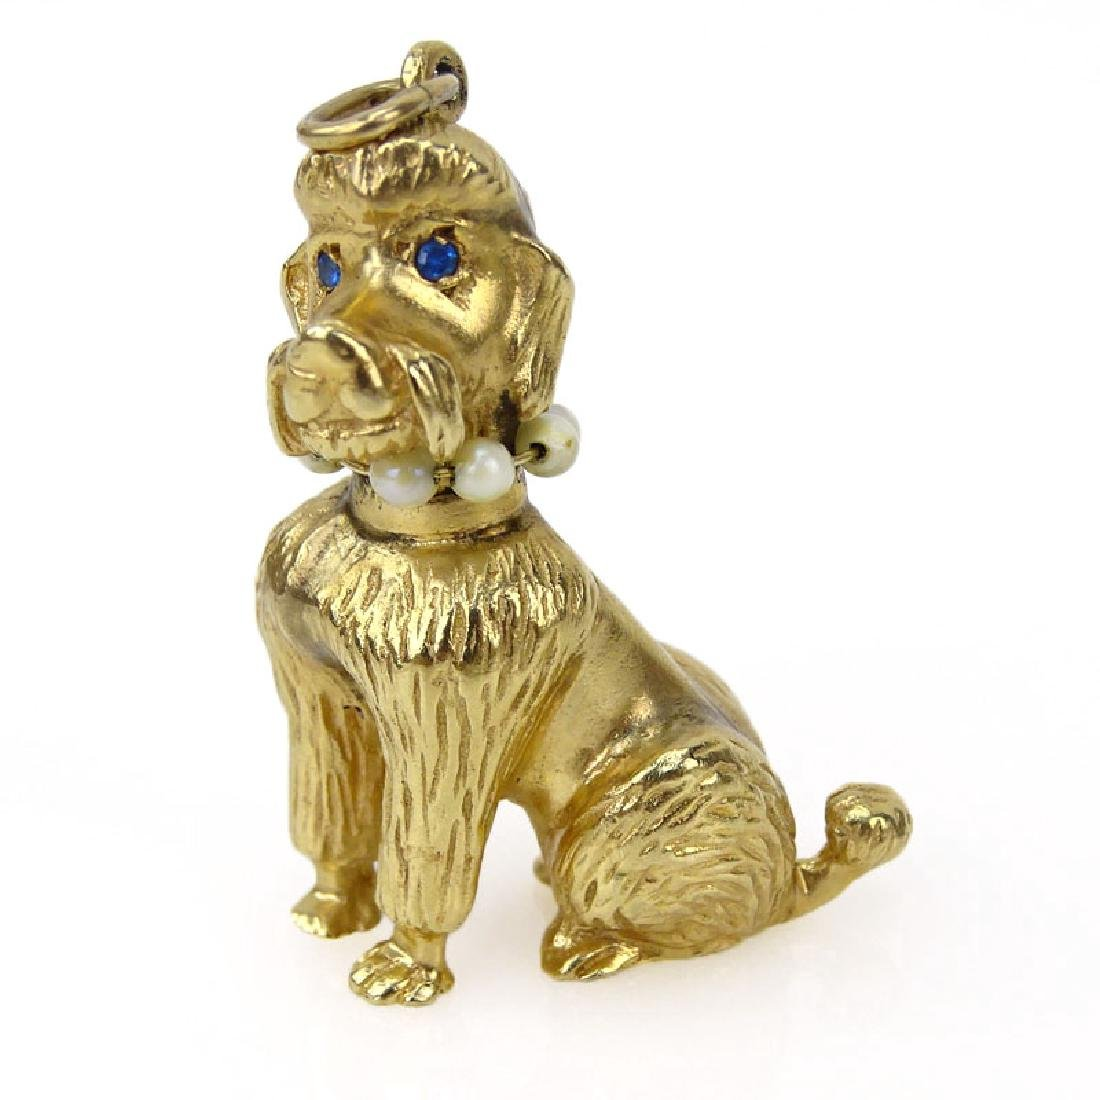 Vintage 14 Karat Yellow Gold Poodle Charm with Sapphire